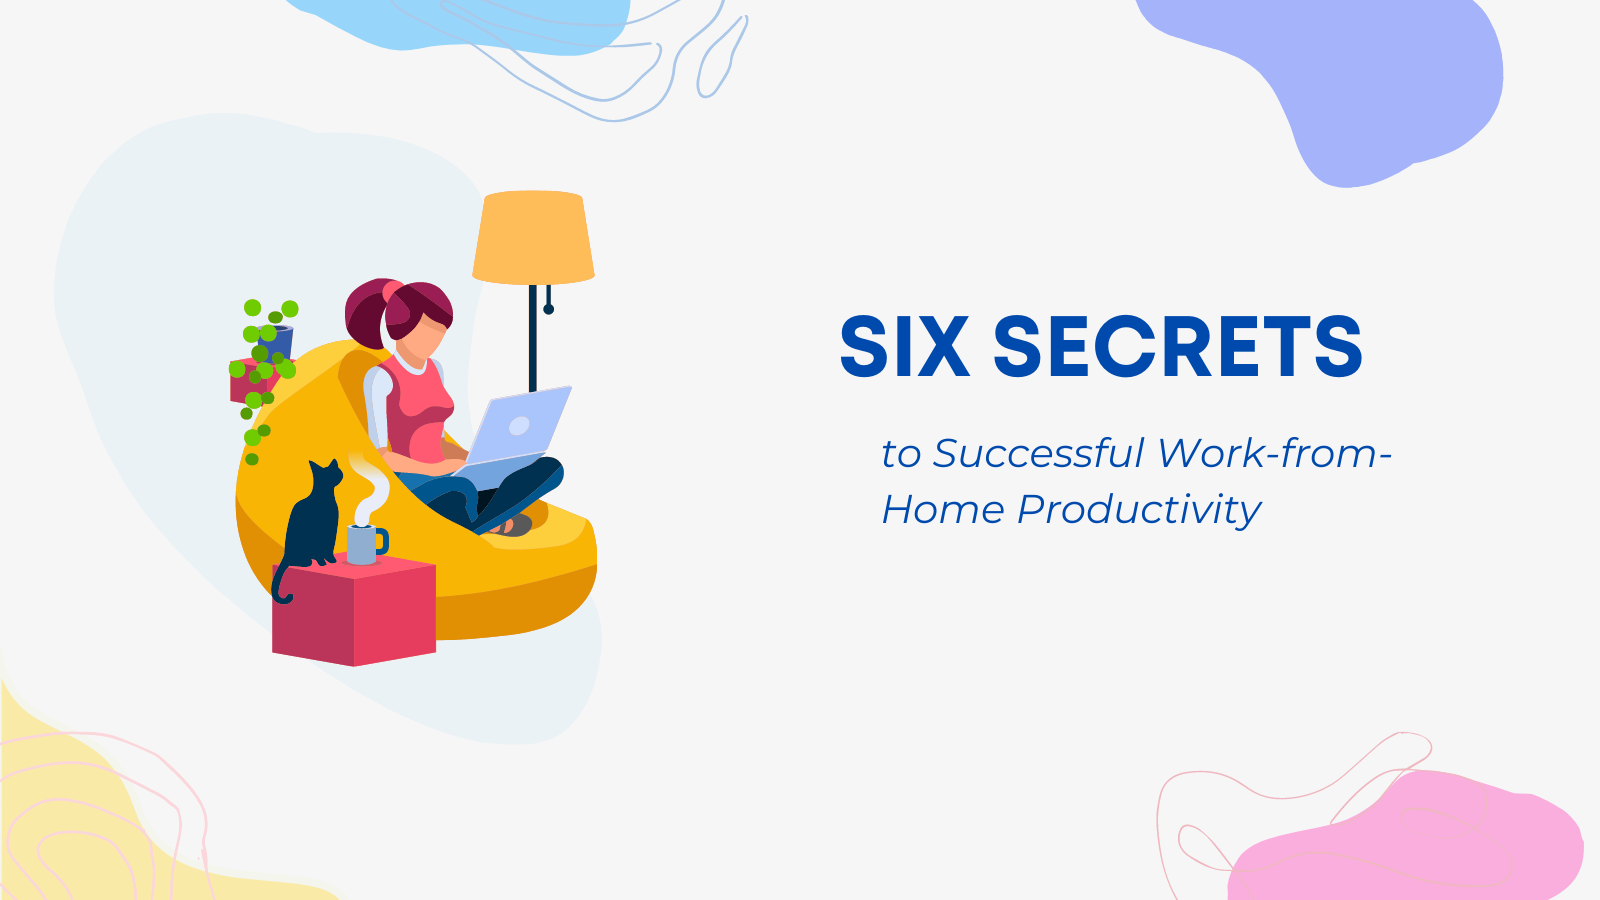 6 Secrets to Work-from-Home Productivity